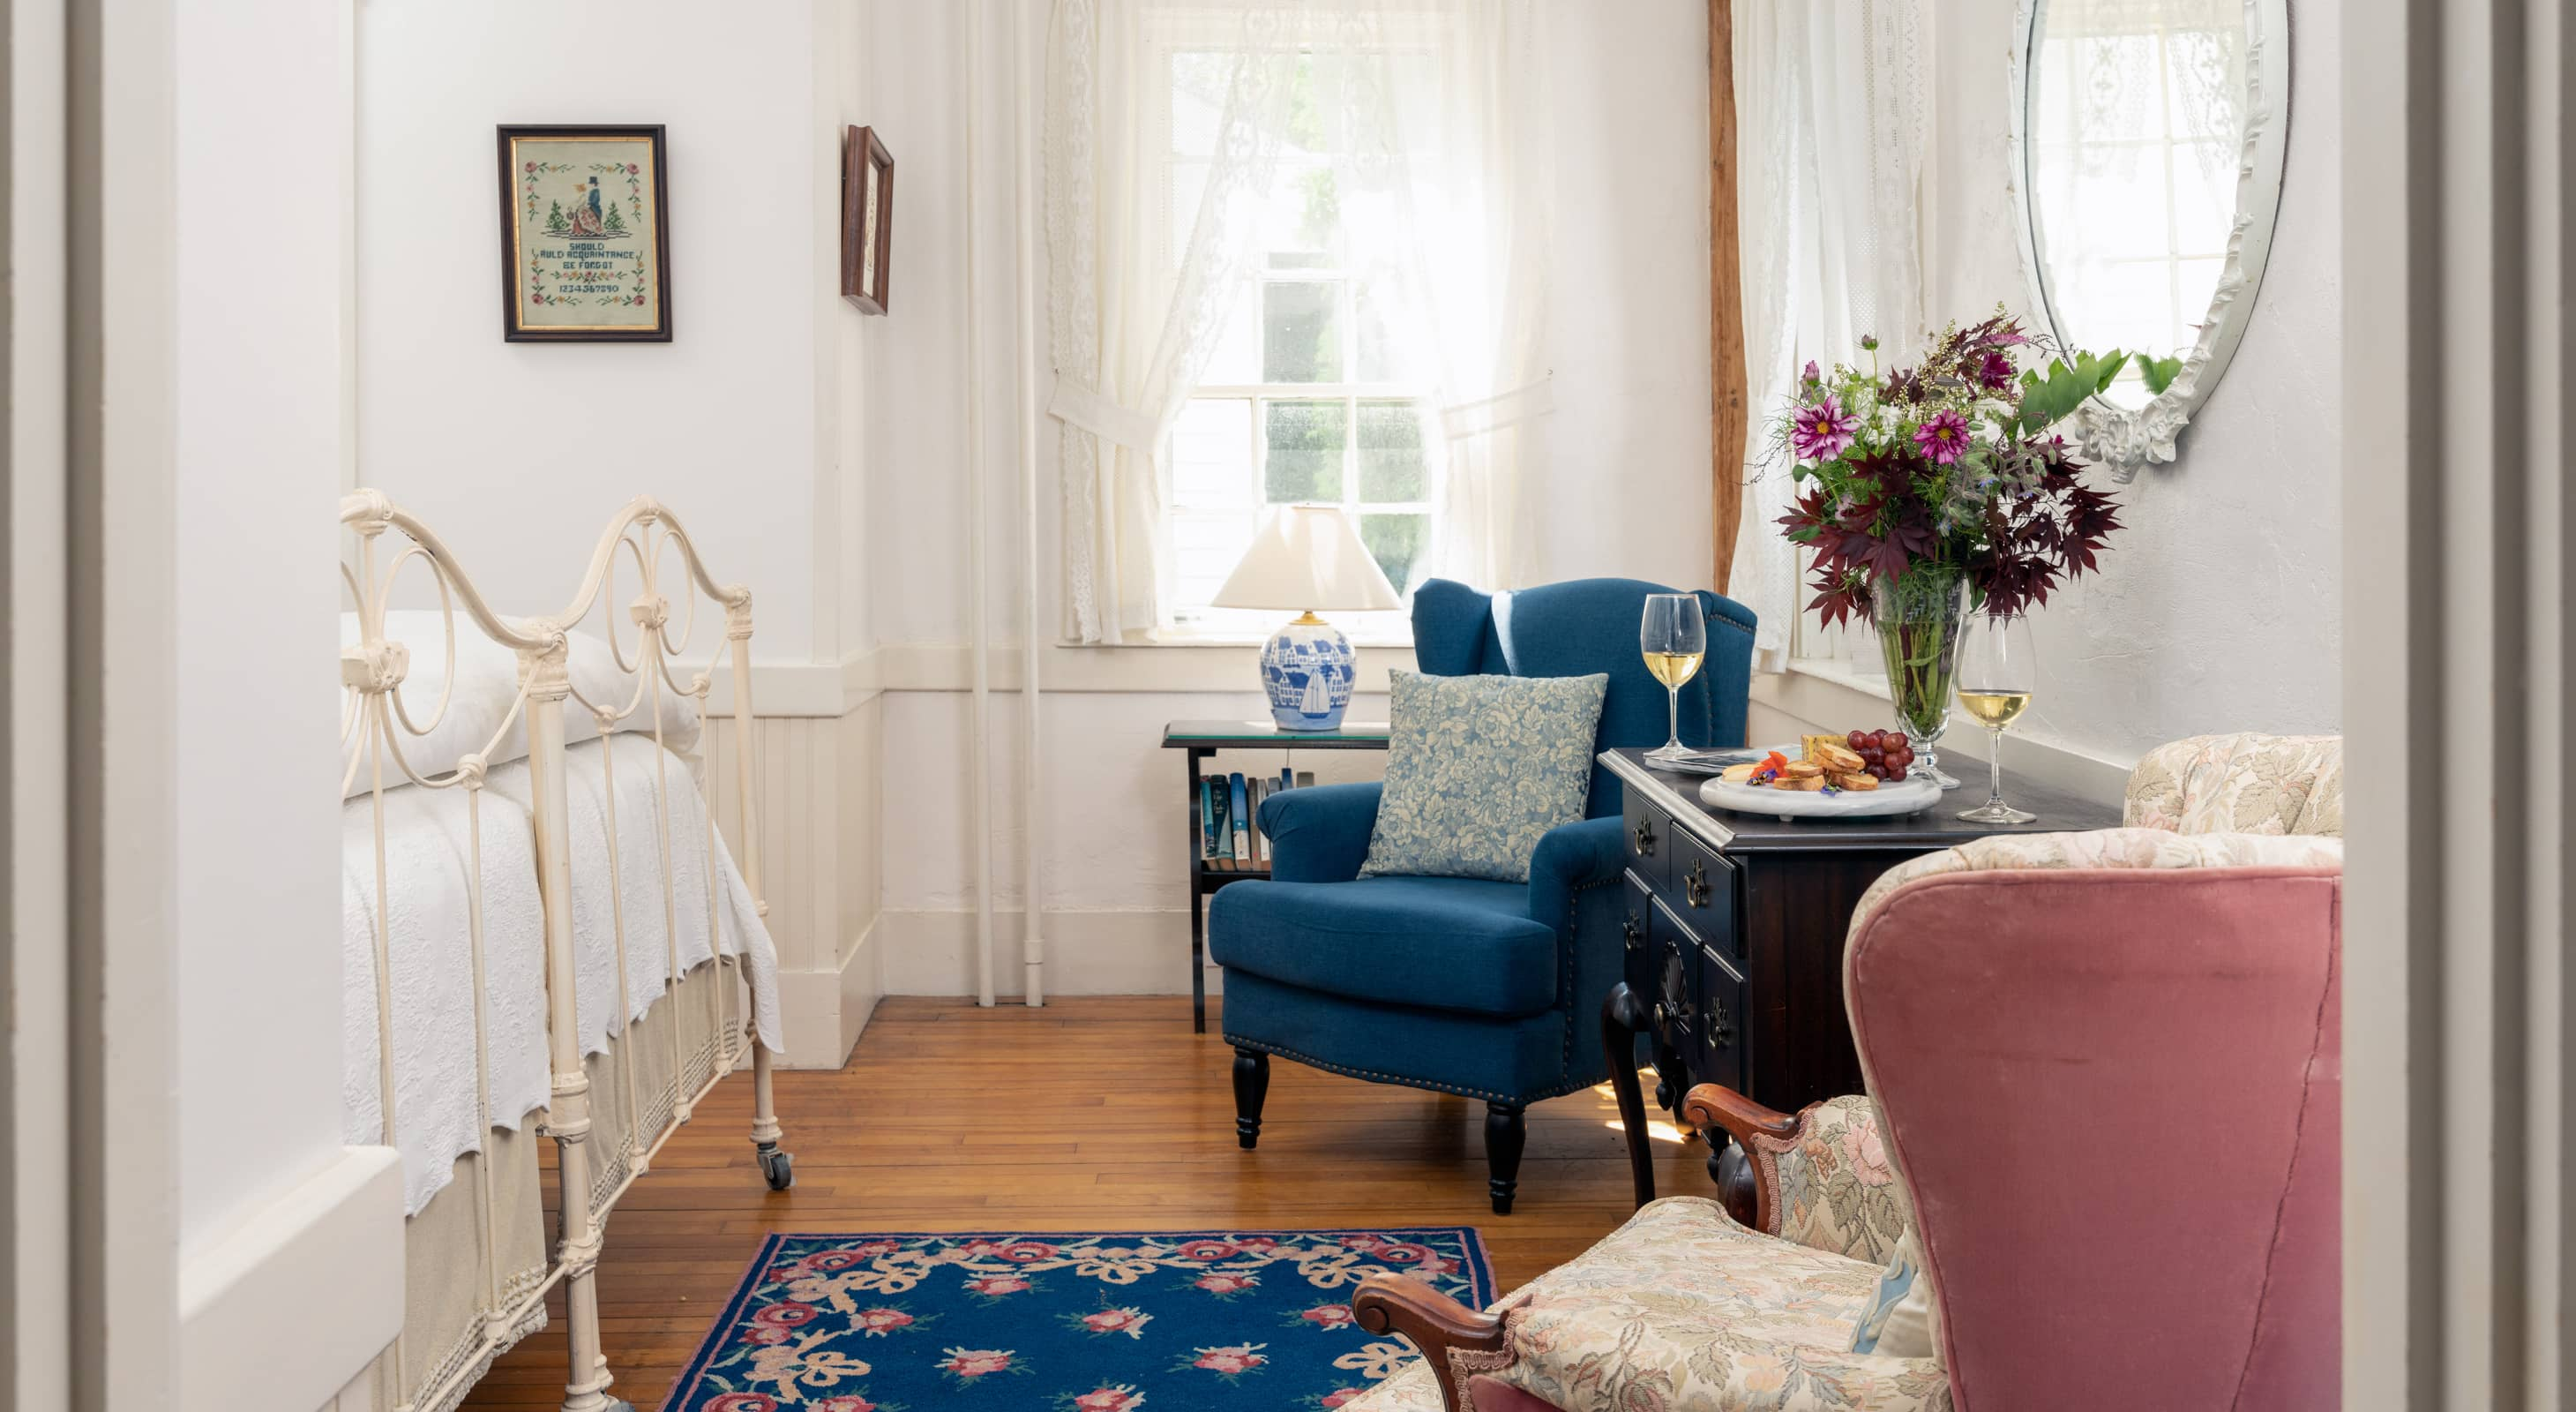 Room 1 with hardwood floors a blue area rug and a seating area for two